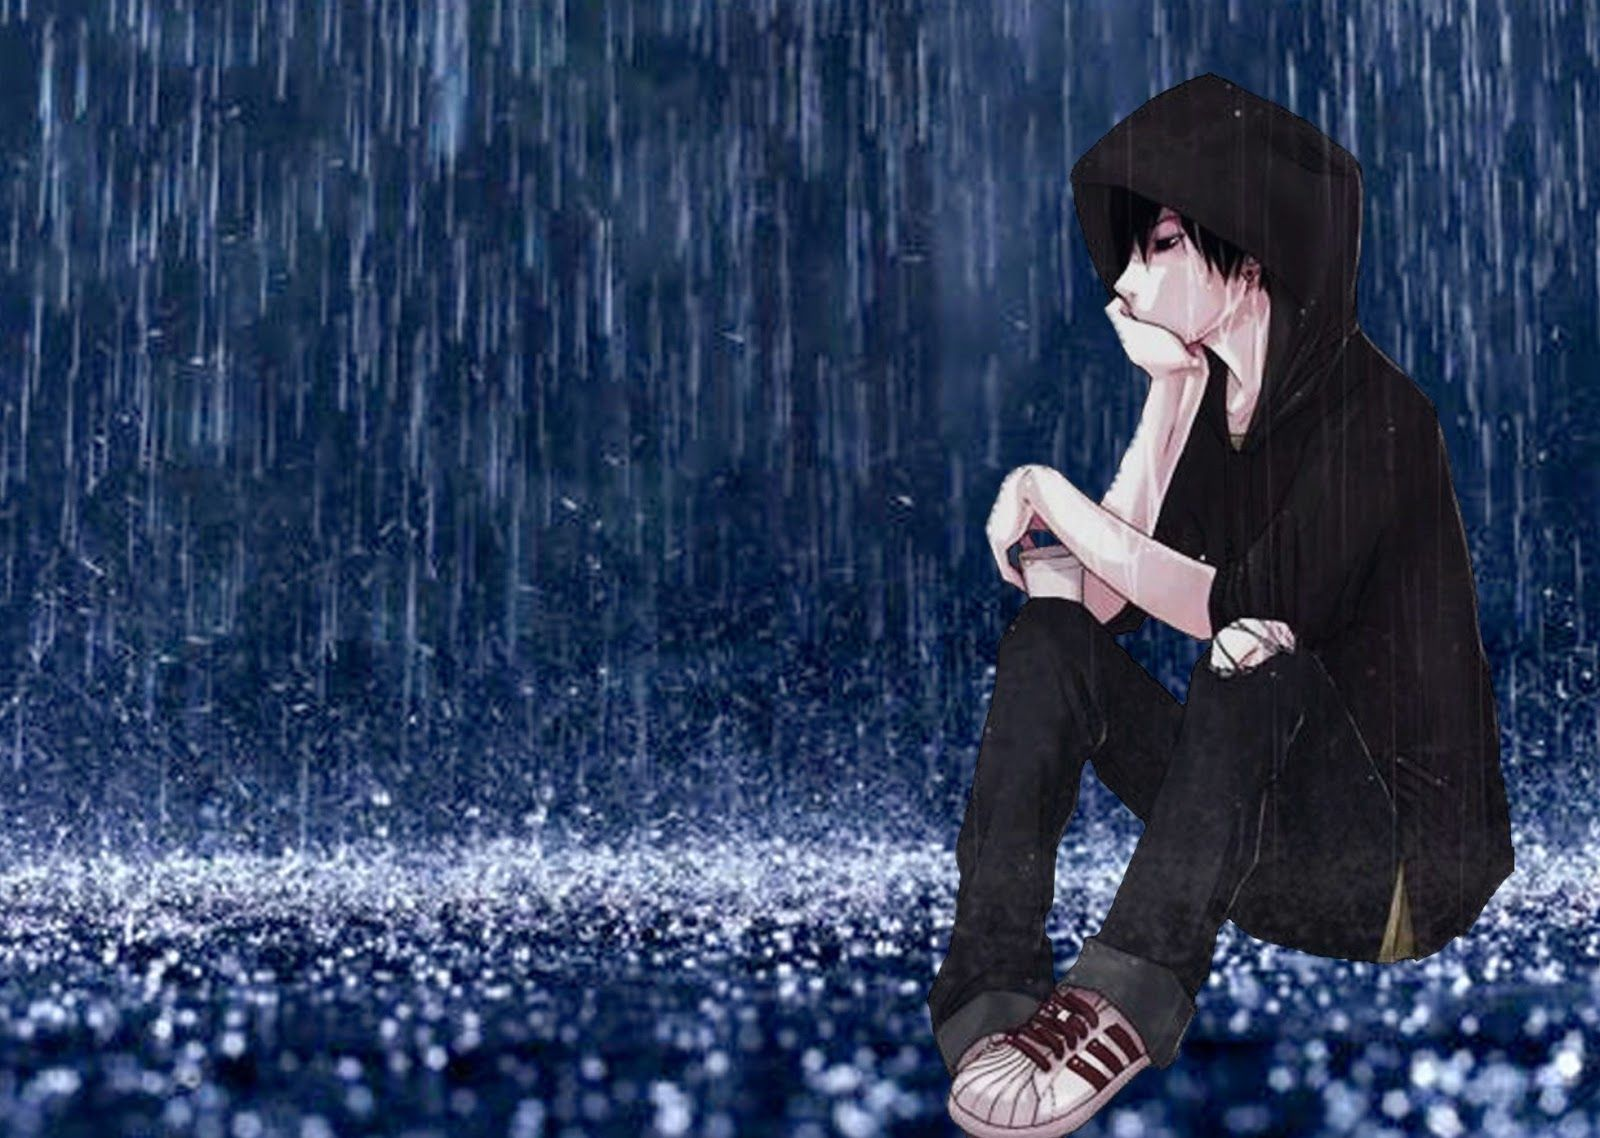 Alone Boy Hd Wallpaper And Images Boy In Rain 1600x1138 Alone Boy Wallpaper Boys Wallpaper Miss You Images